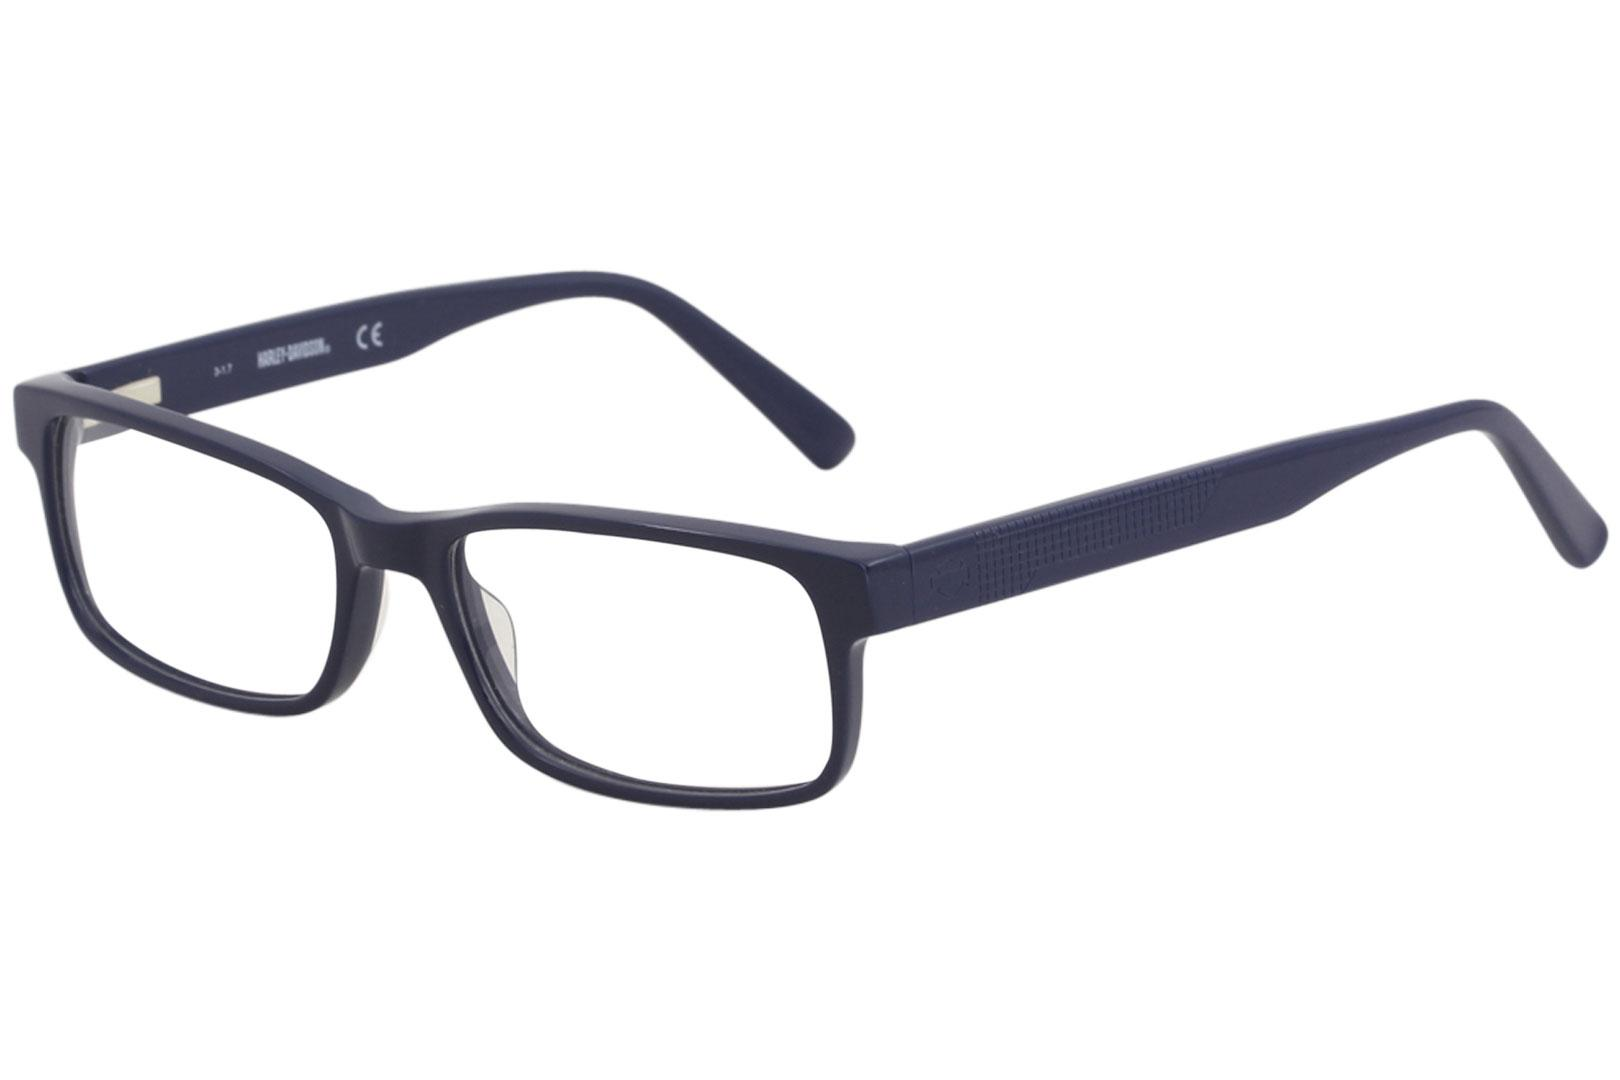 74855d6128 Harley-Davidson Men s Eyeglasses HD0745 HD 0745 Full Rim Optical Frame by  Harley-Davidson